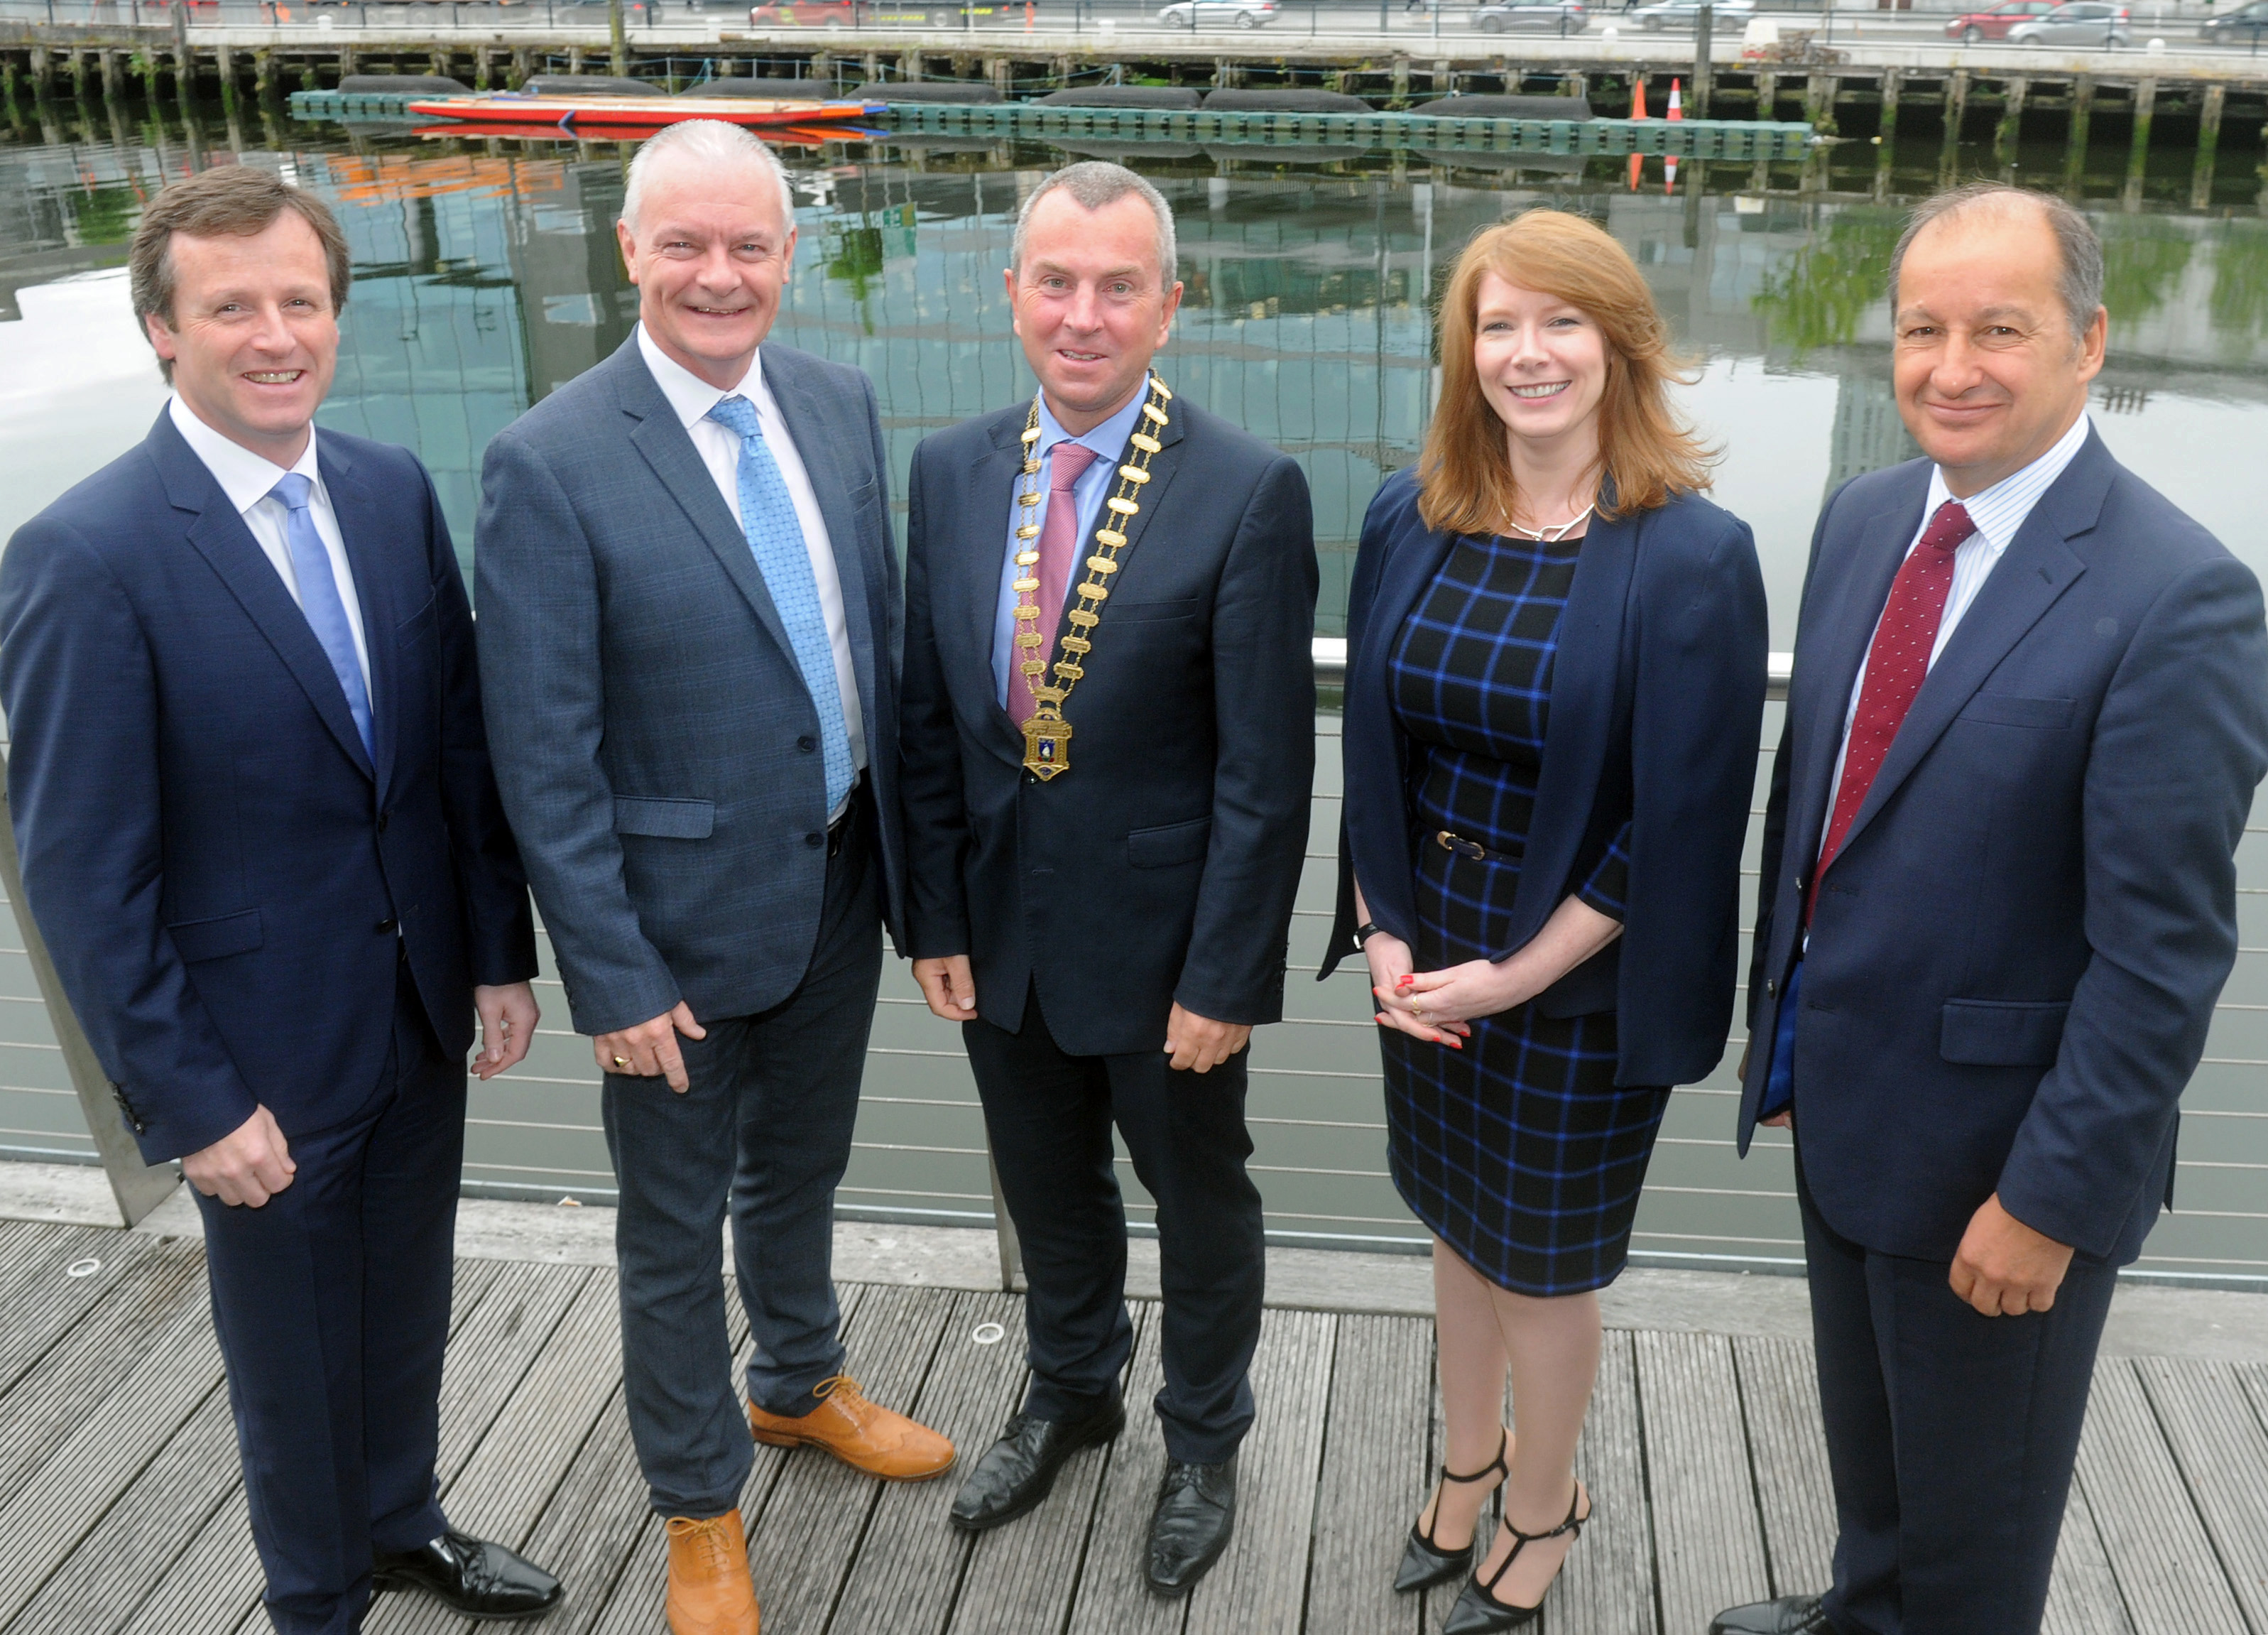 Pictured at the May Business Breakfast (L-R) Kyran Johnson, Janssen; Aidan Forde, Irish Examiner; Bill O'Connell, Cork Chamber; Moira Horgan, BITC; Chris Martin, Musgrave Group.